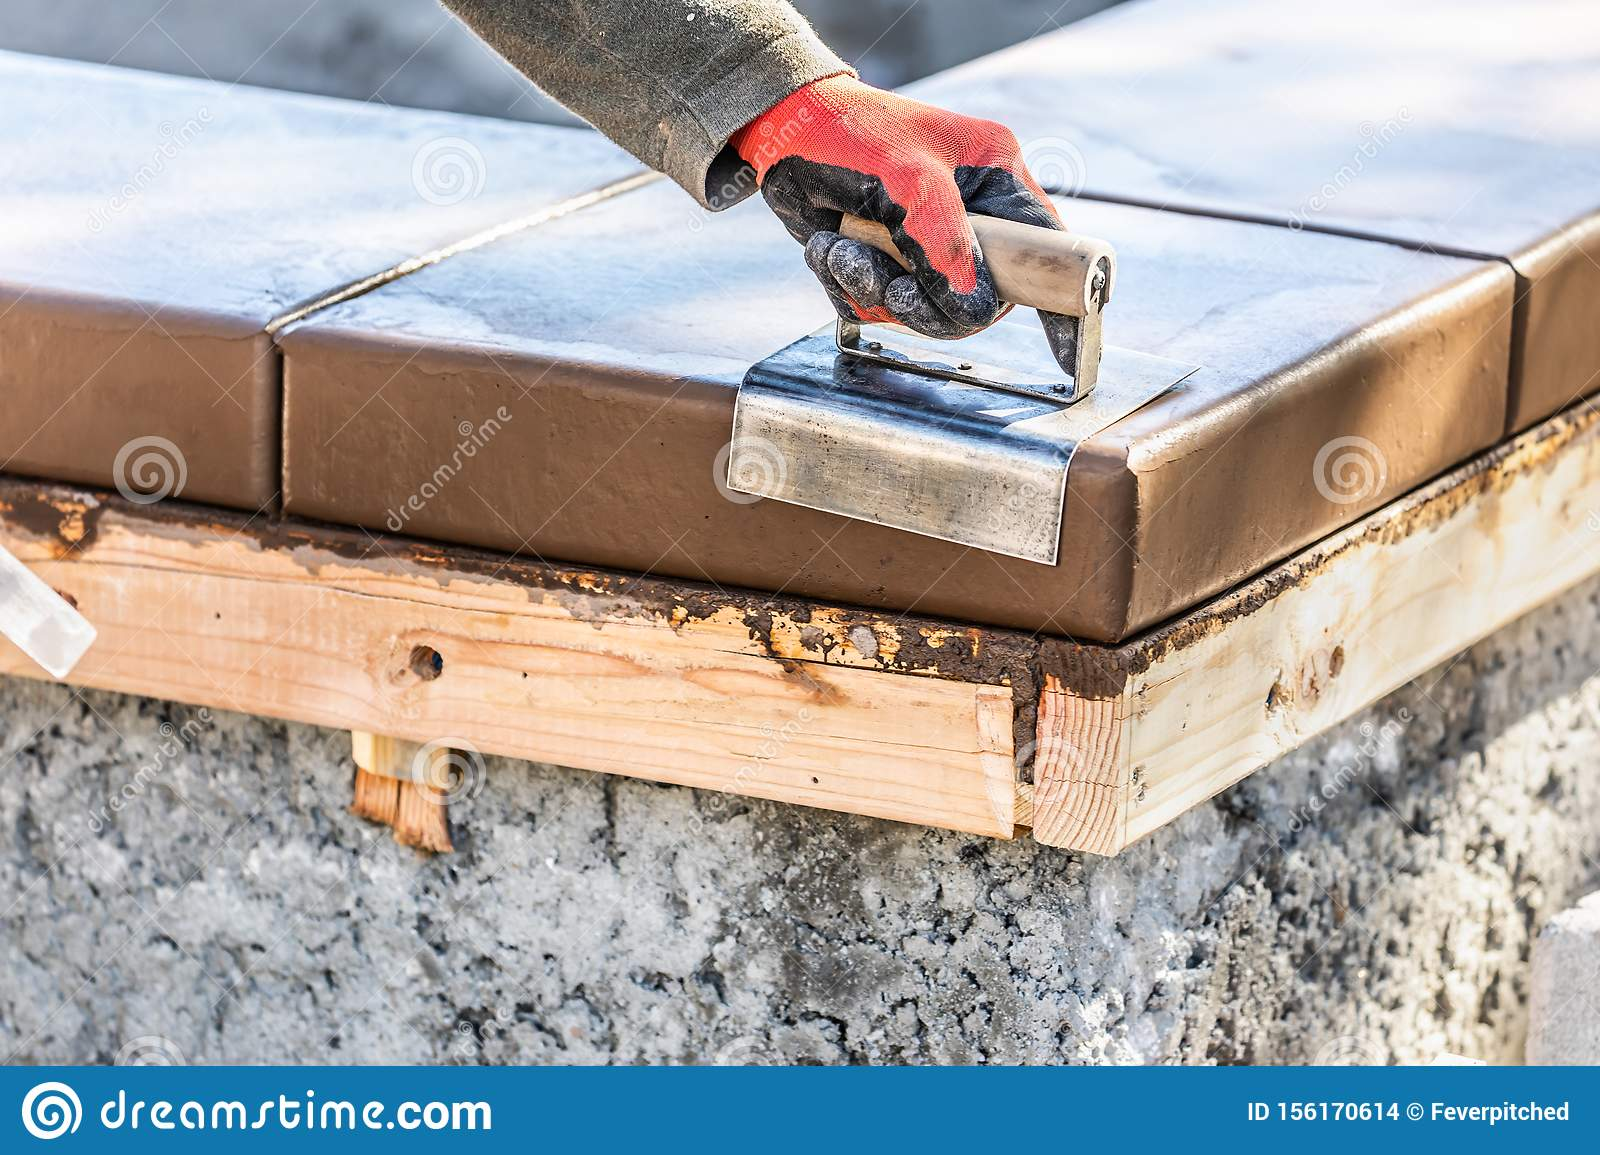 Construction Worker Using Stainless Steel Edger On Wet